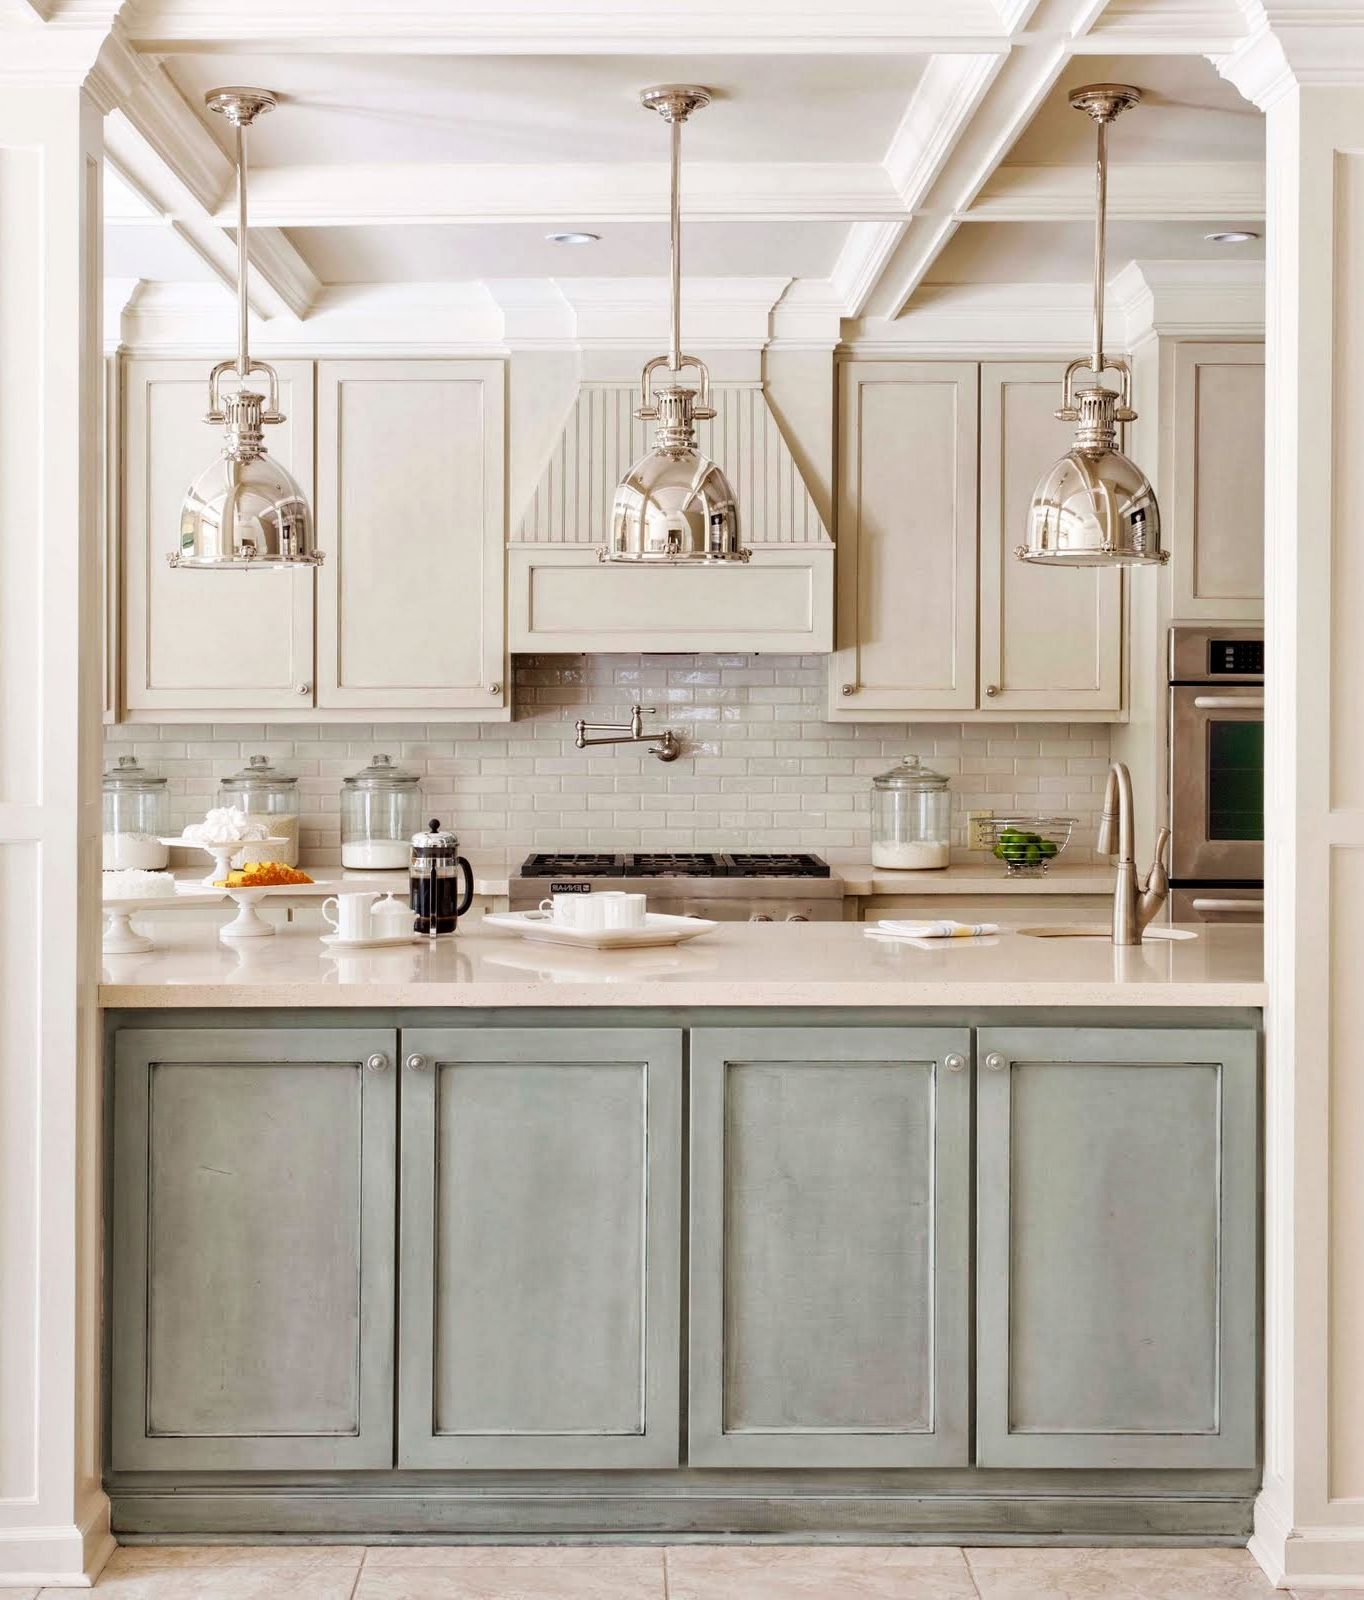 Kitchen , Romantic Cooking Space Through Shabby Chic Kitchen Ideas : Shabby  Chic Kitchen With Classy Lamp Ideas